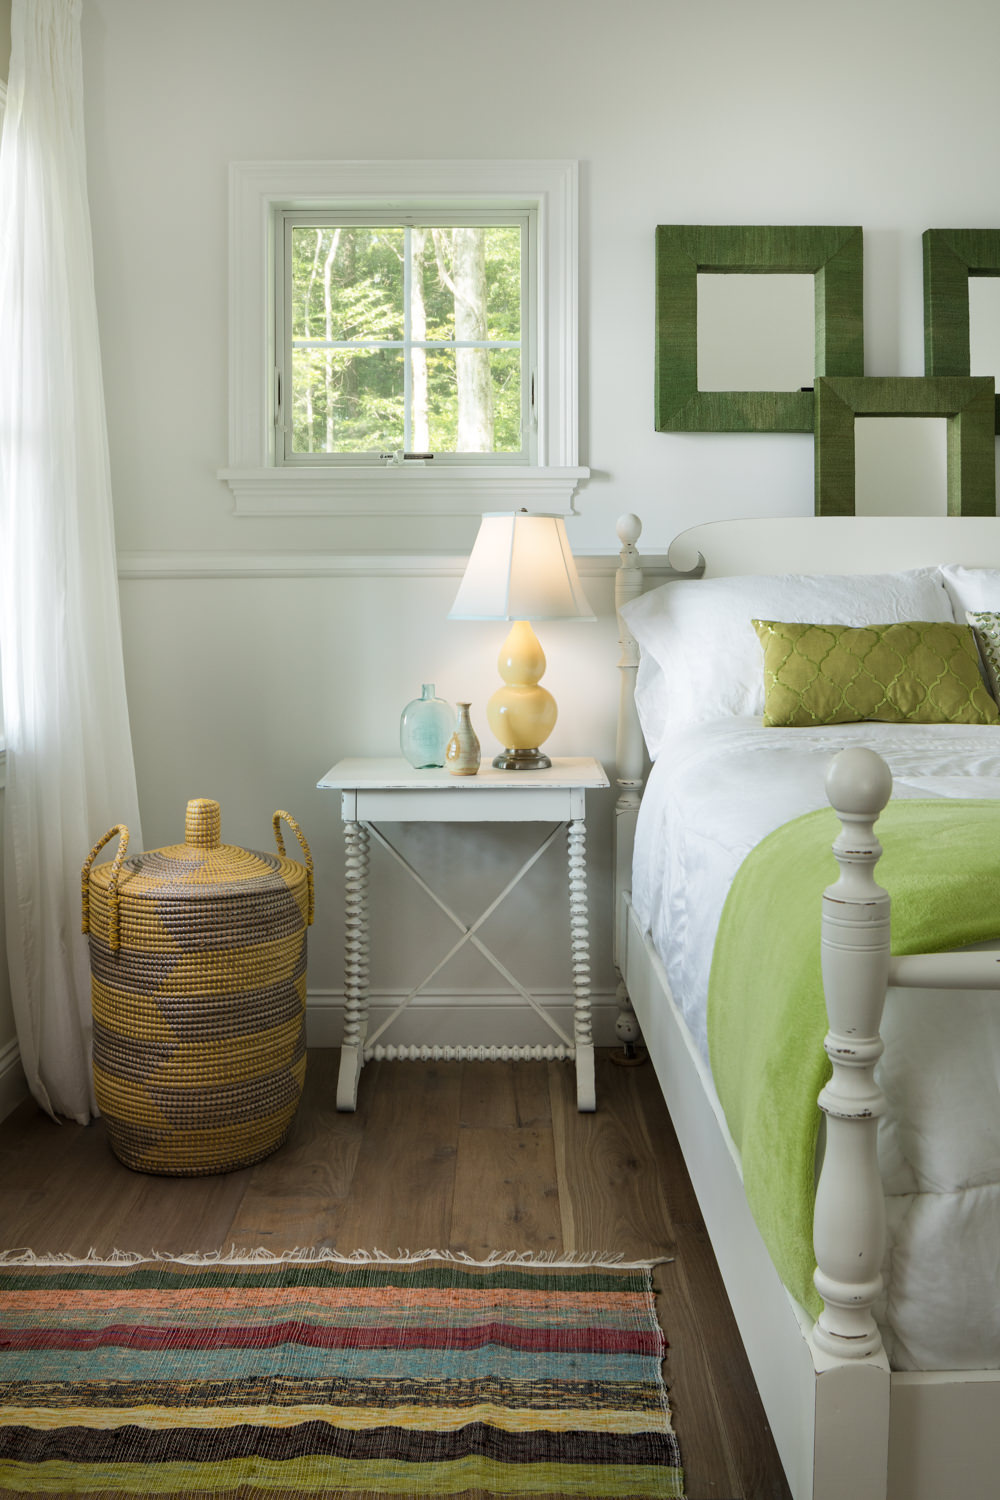 A photo of a rustic chic guest bedroom design with green accents, woven basket, hand tied rug and yellow lamp by photographer Stina Booth